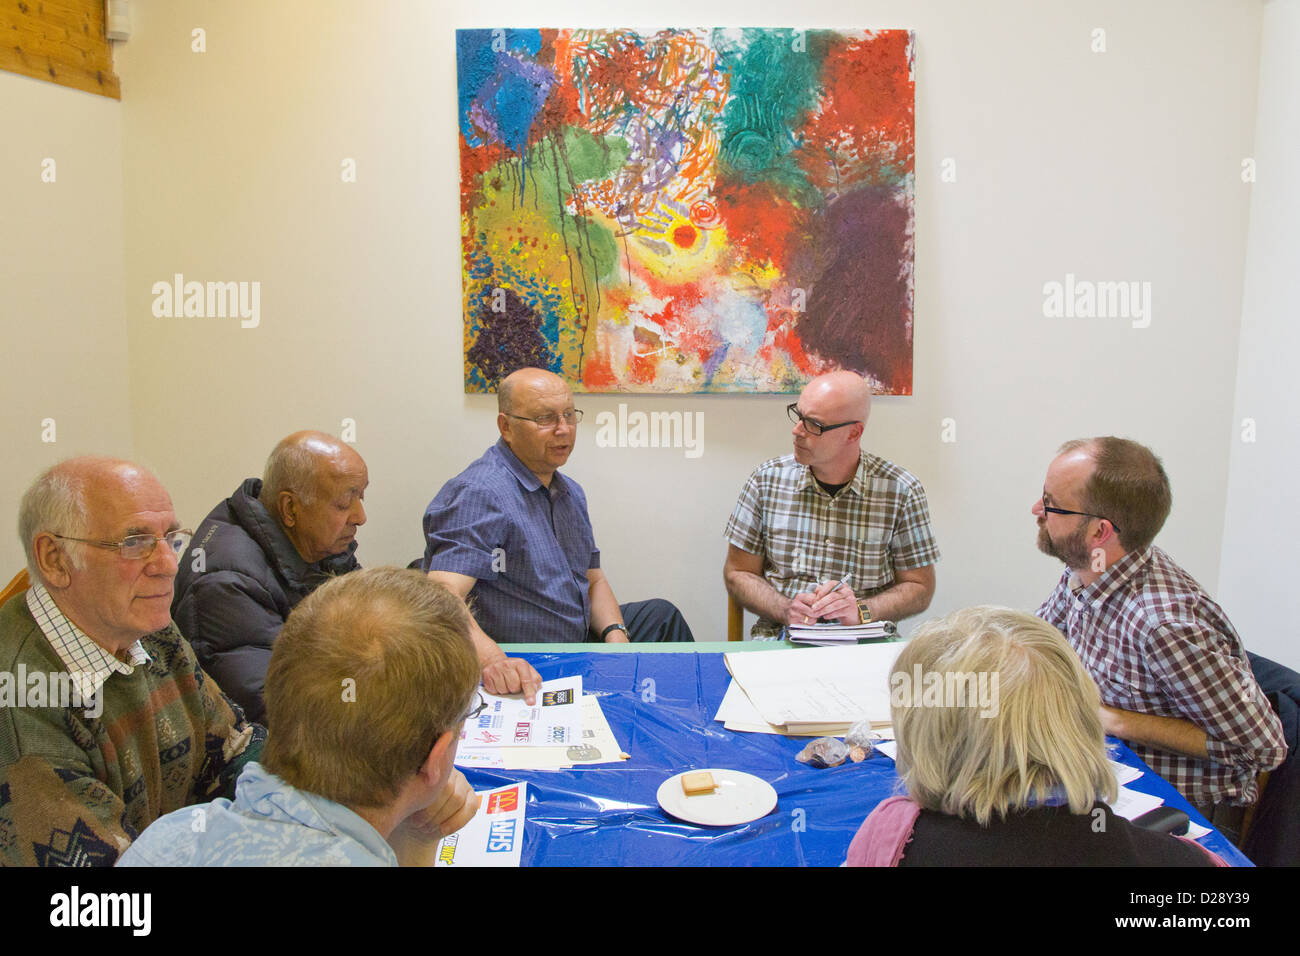 Consultation with staff and volunteers at charity for people with visual impairments (NRSB) as part of rebranding exercise Stock Photo